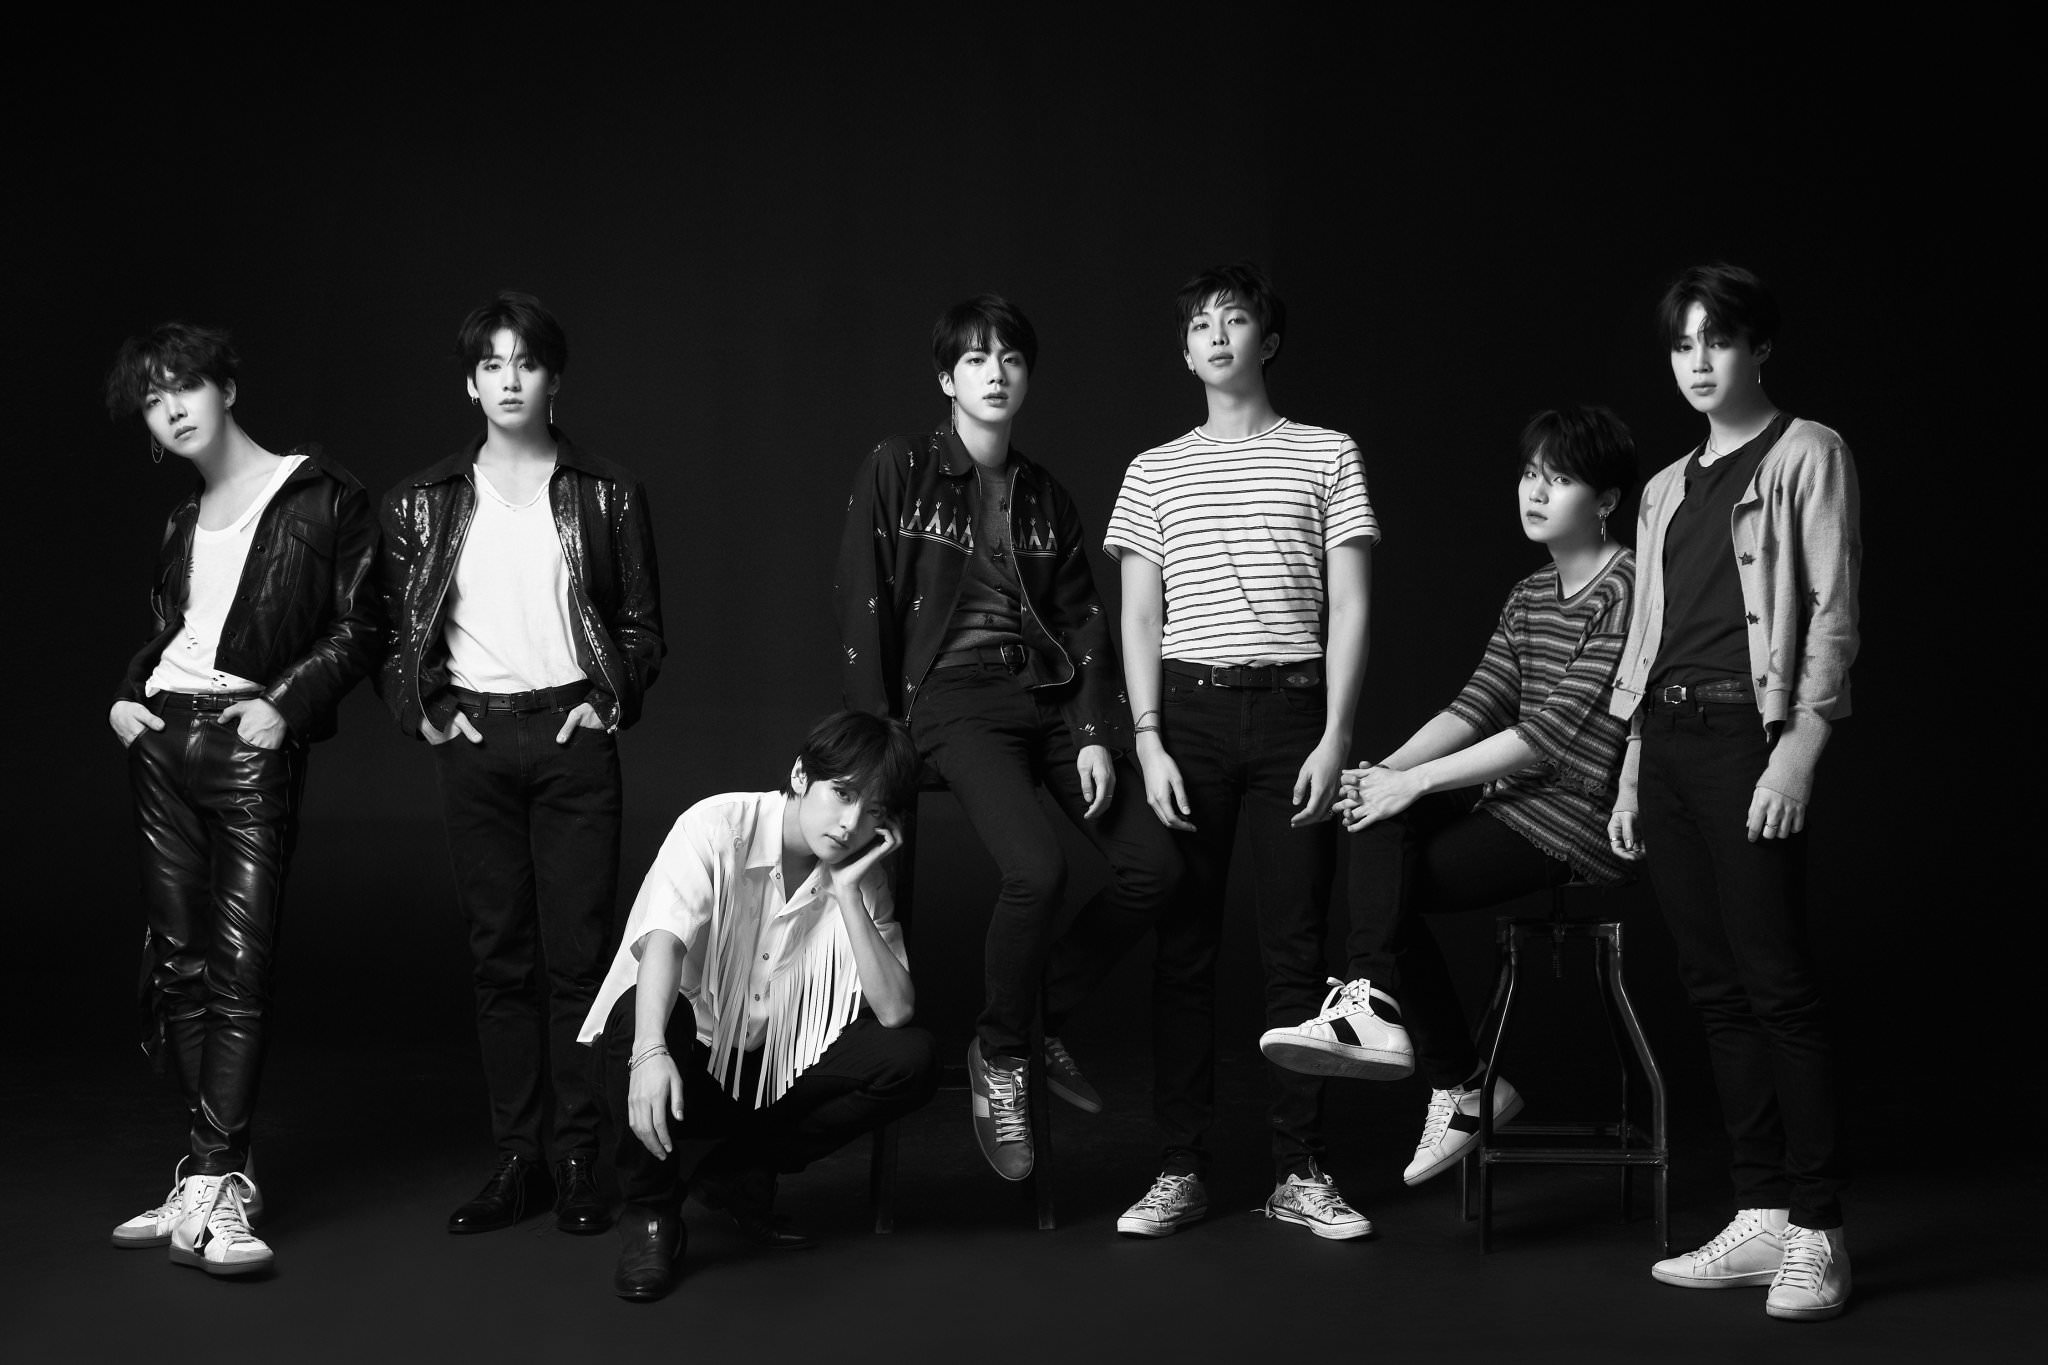 Bts Just Became The First East Asian Artists To Top The Billboard